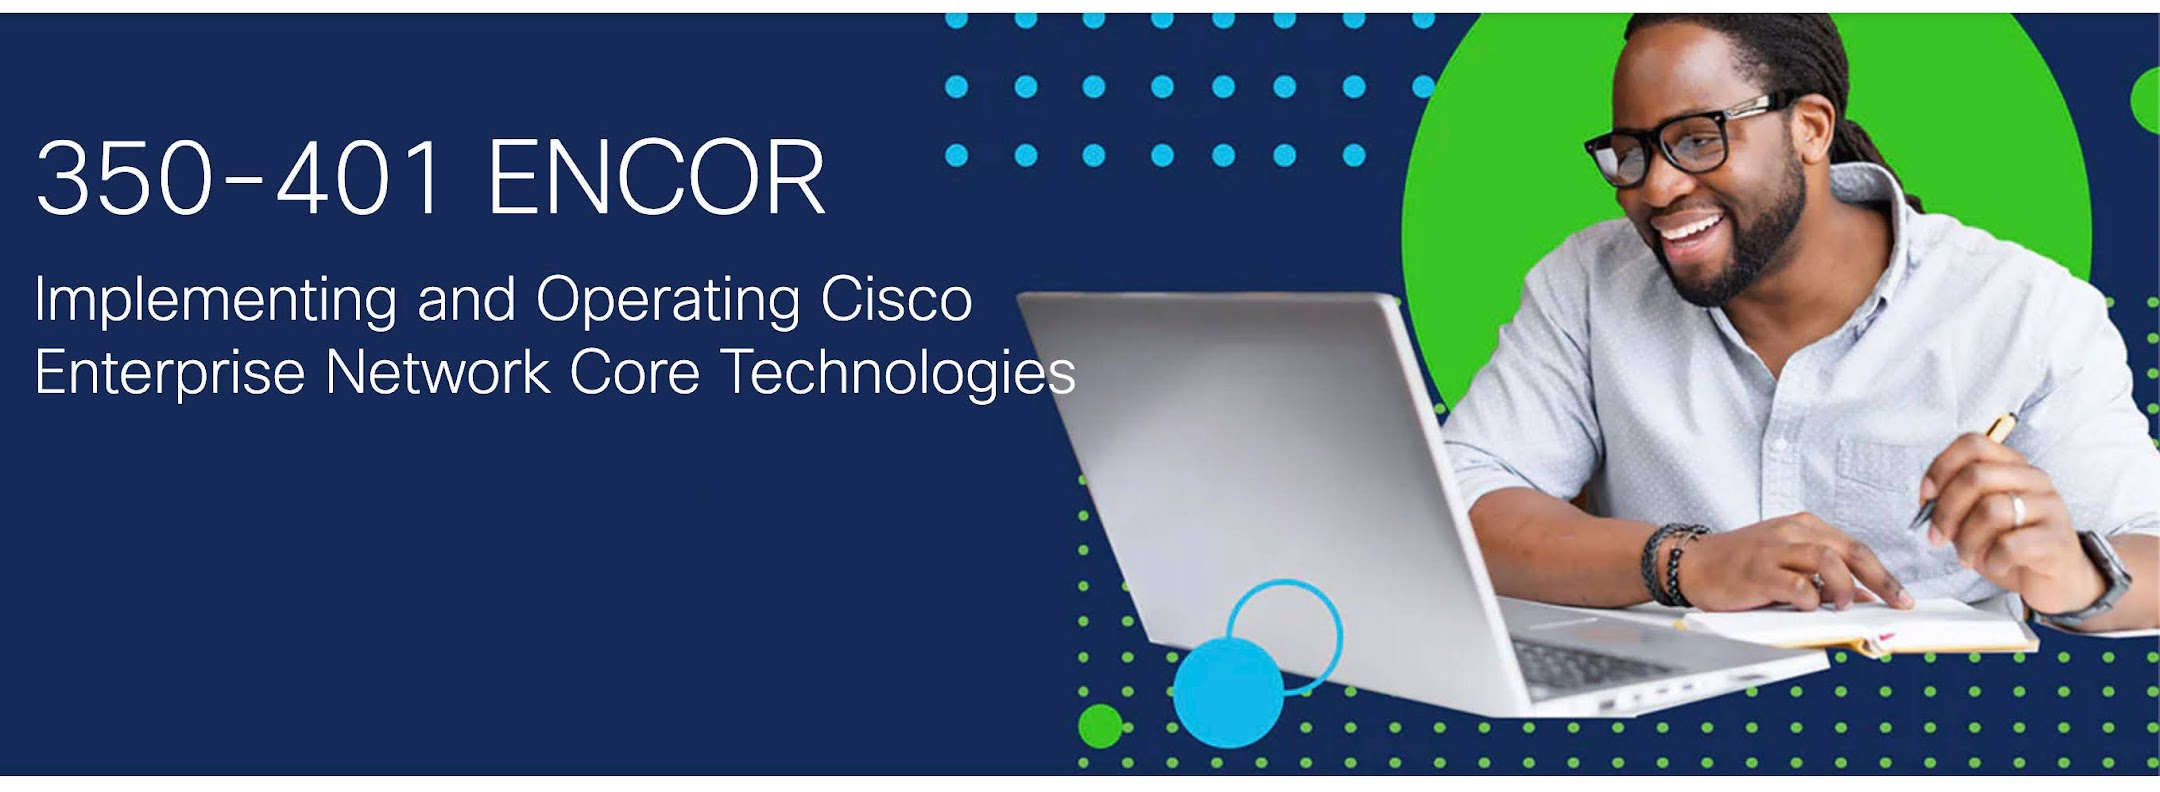 Cisco CCNP and CCIE Enterprise Core: Implementing and Operating Cisco Enterprise Network Core Technologies (ENCOR) 350-401 Exam Questions and Answers